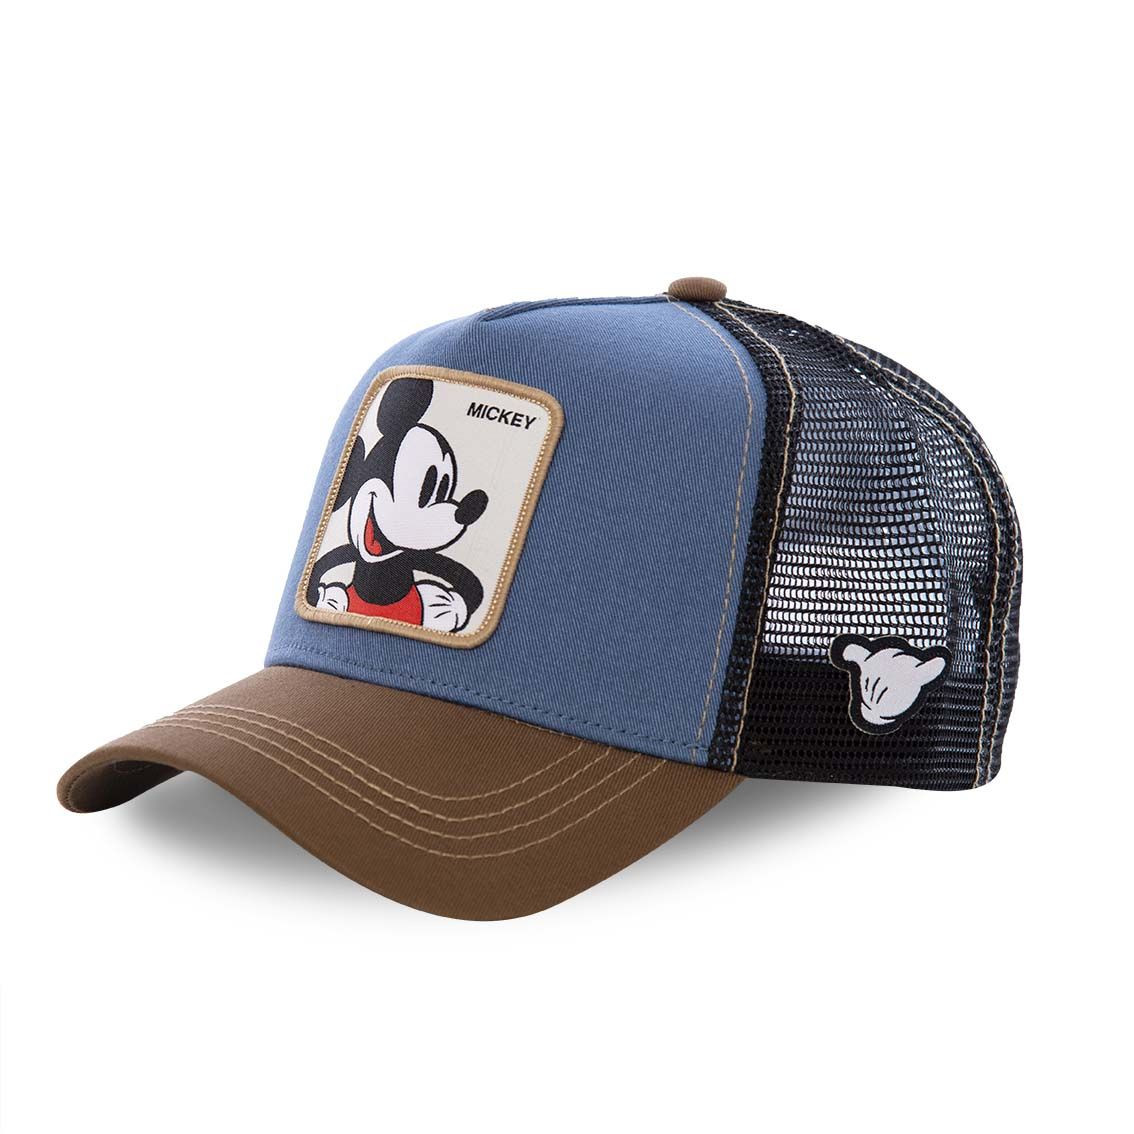 Casquette capslab disney mickey bleu et marron (photo)